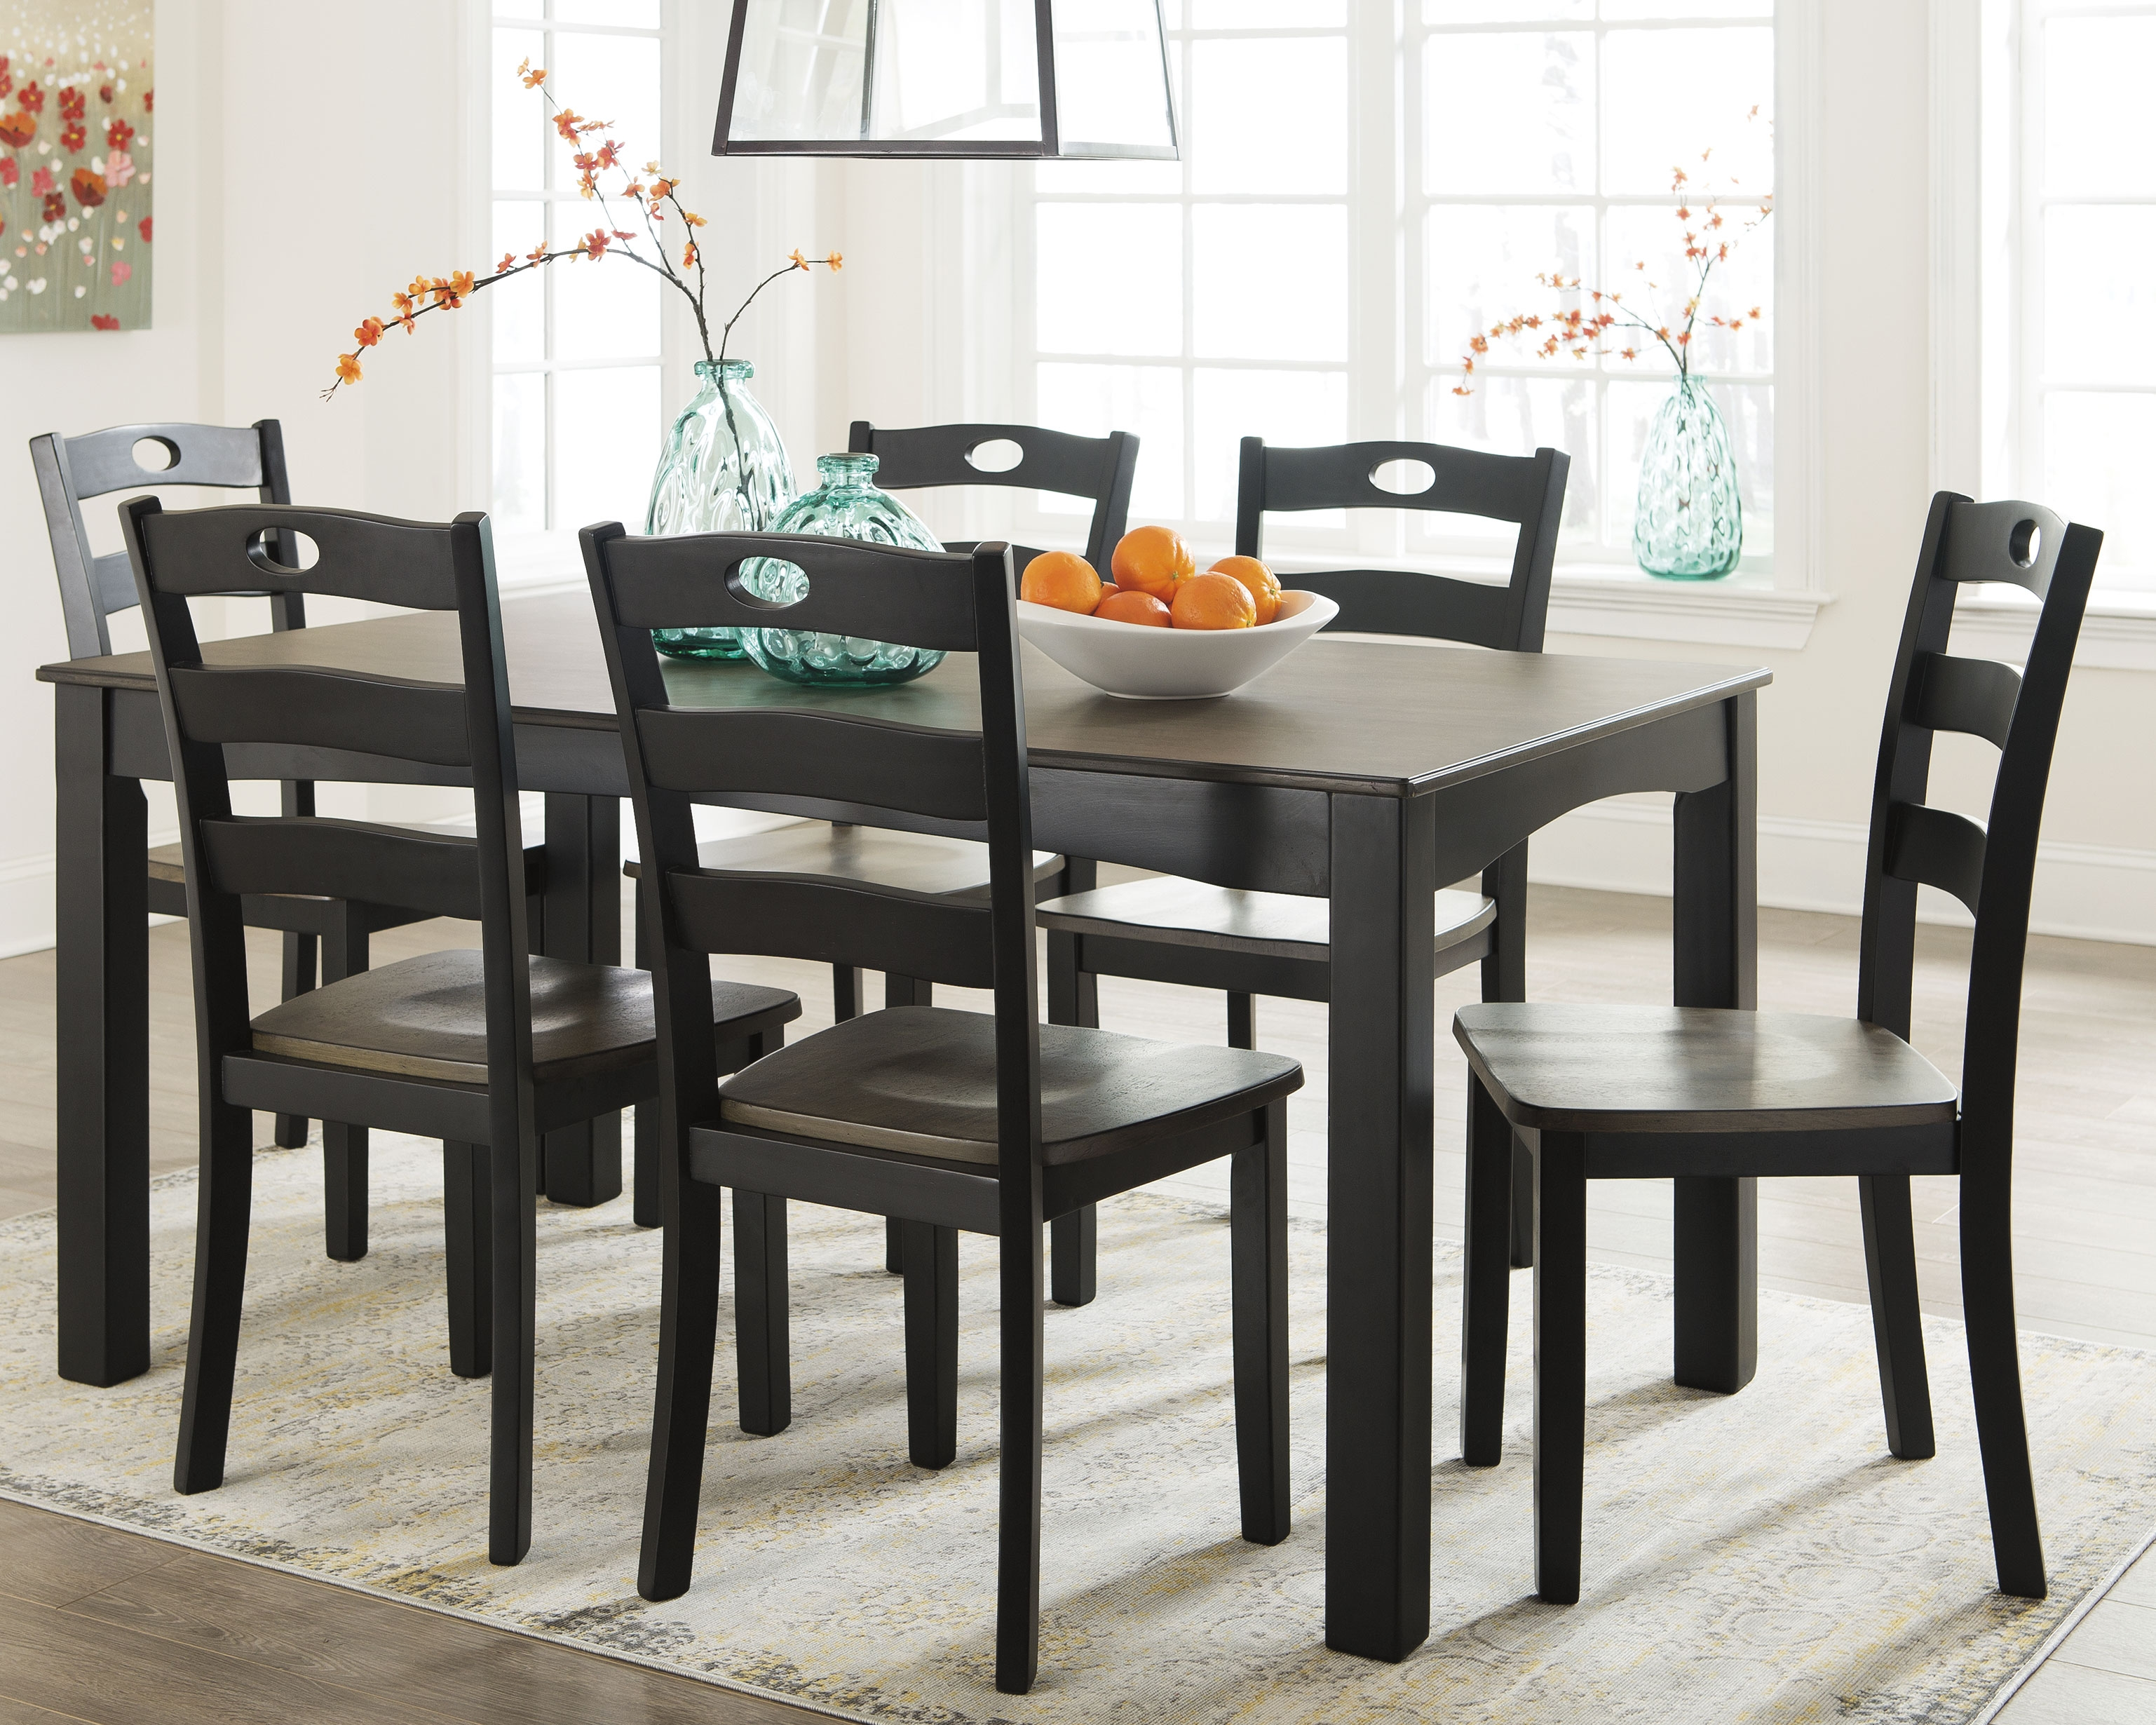 Froshburg Dining Room Table and 6 Chairs